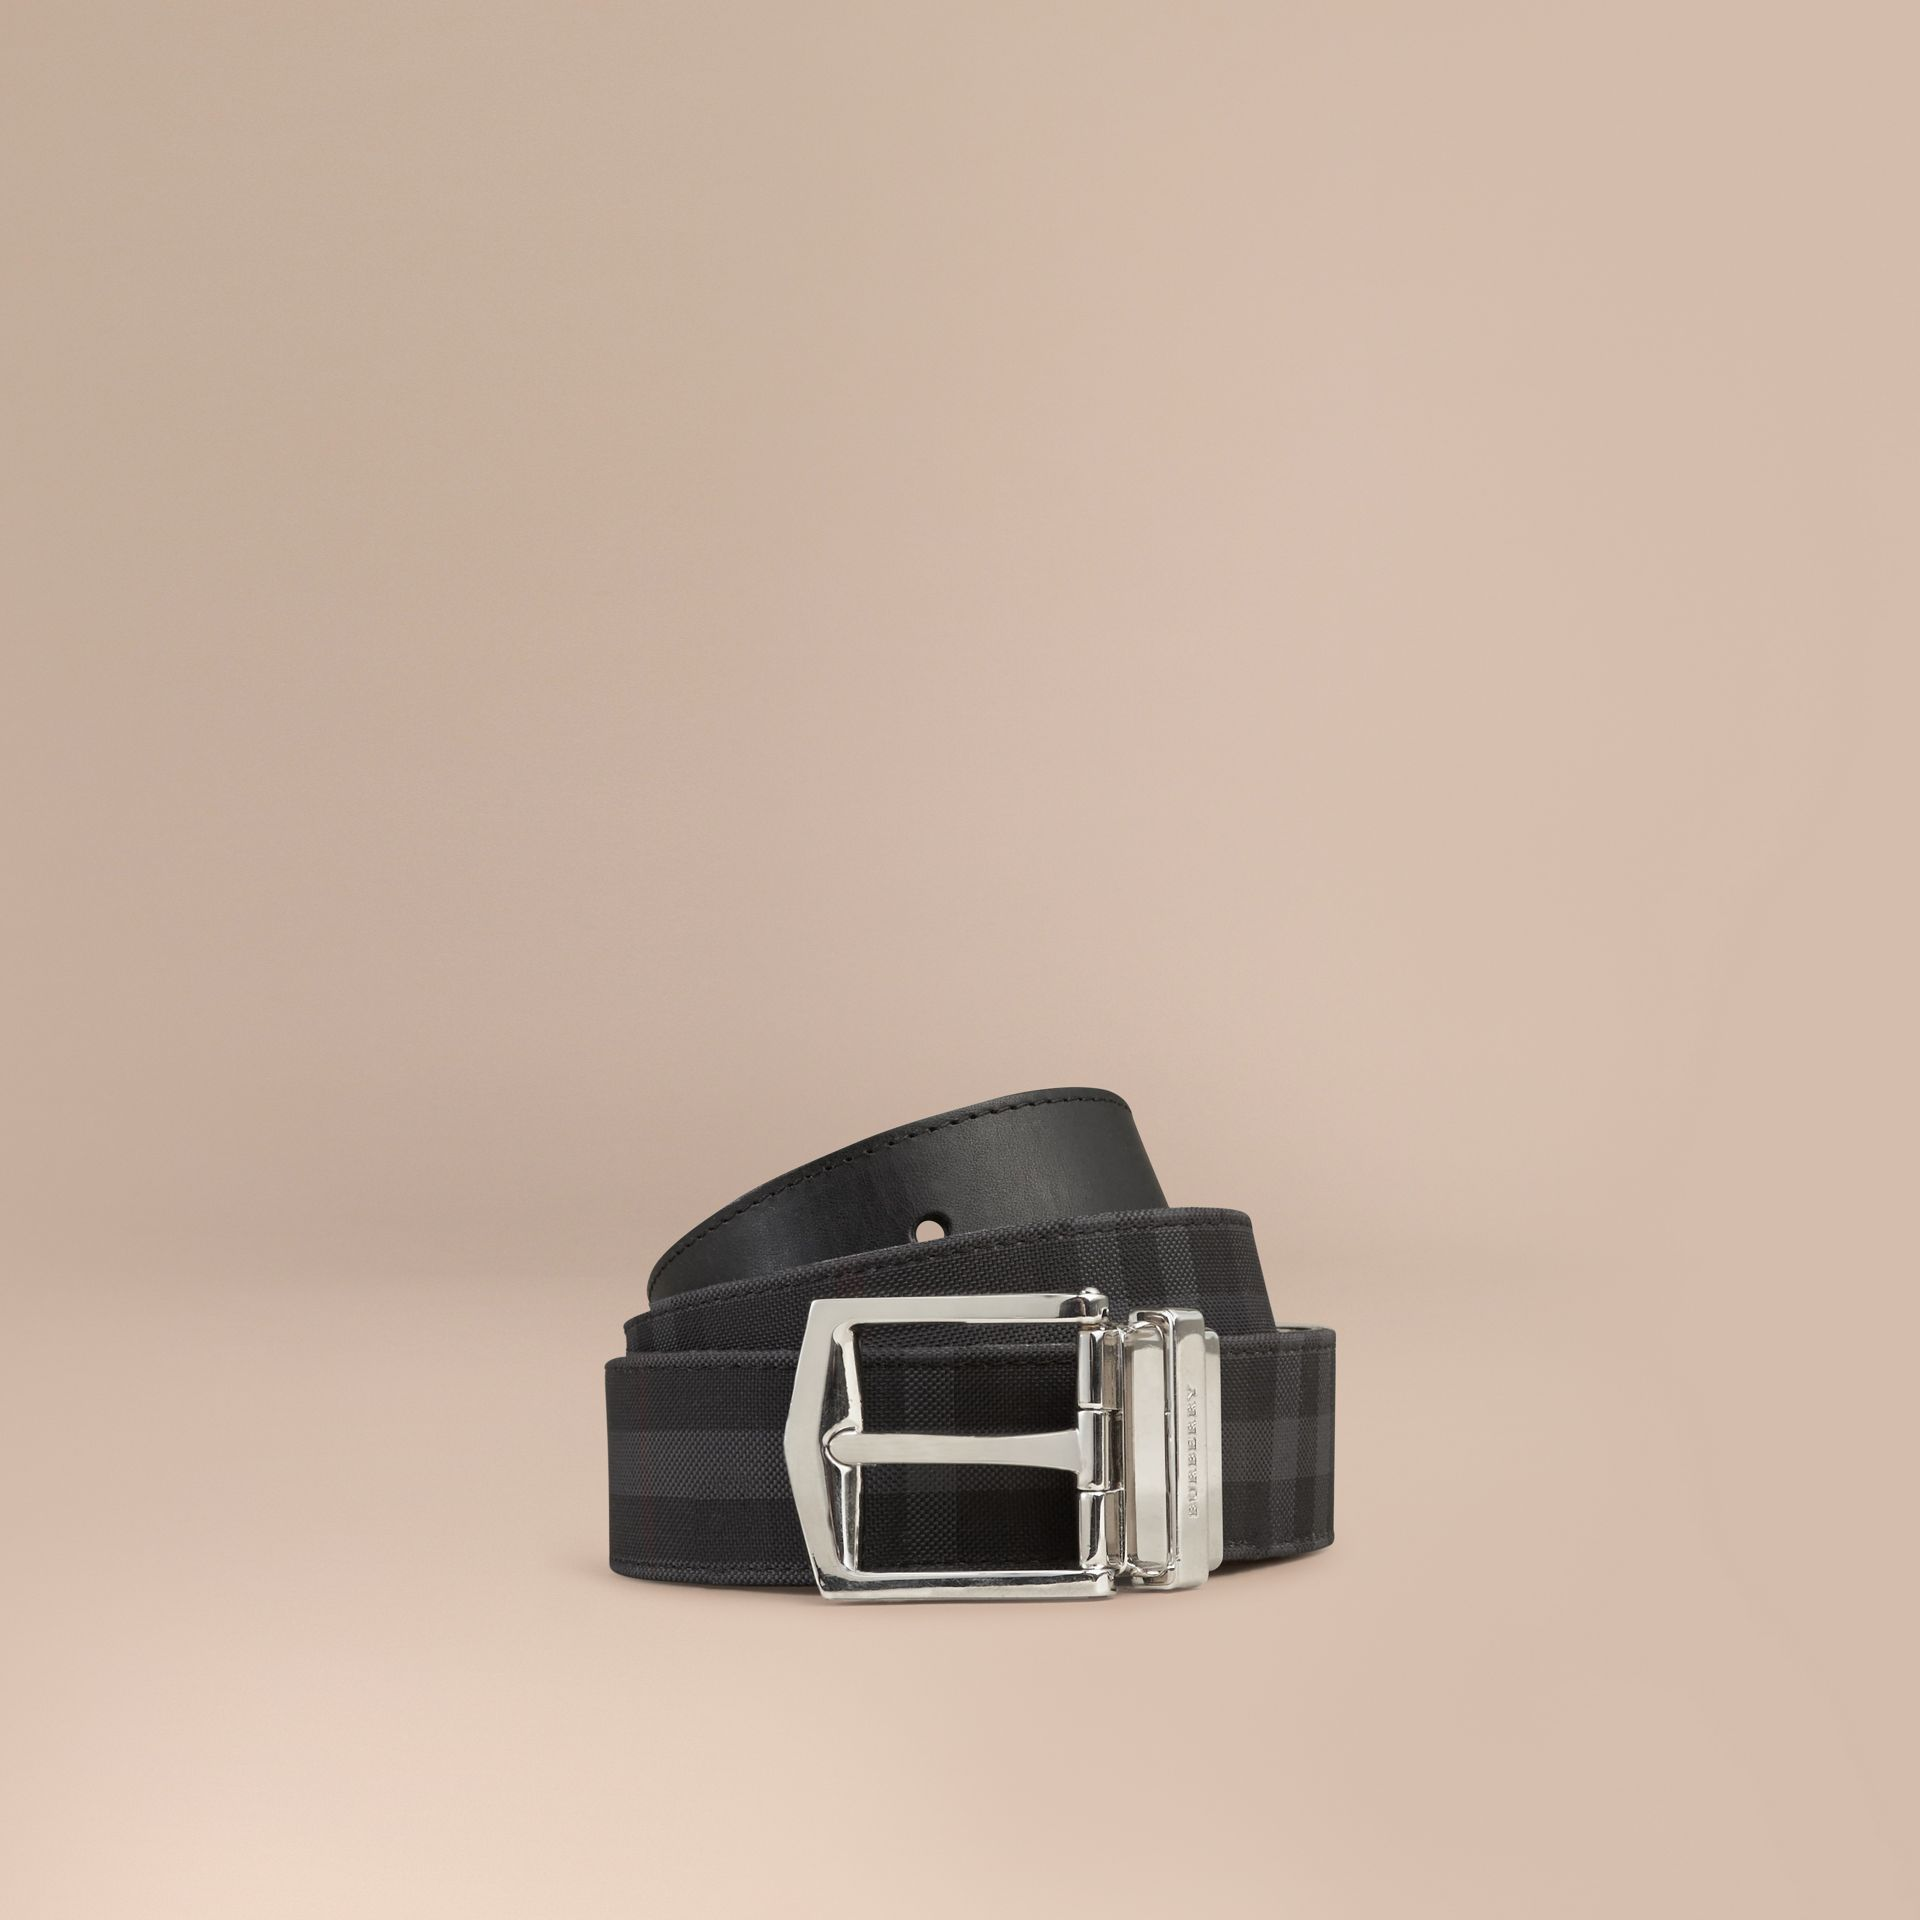 Charcoal/black Reversible Horseferry Check and Leather Belt Charcoal/black - gallery image 1